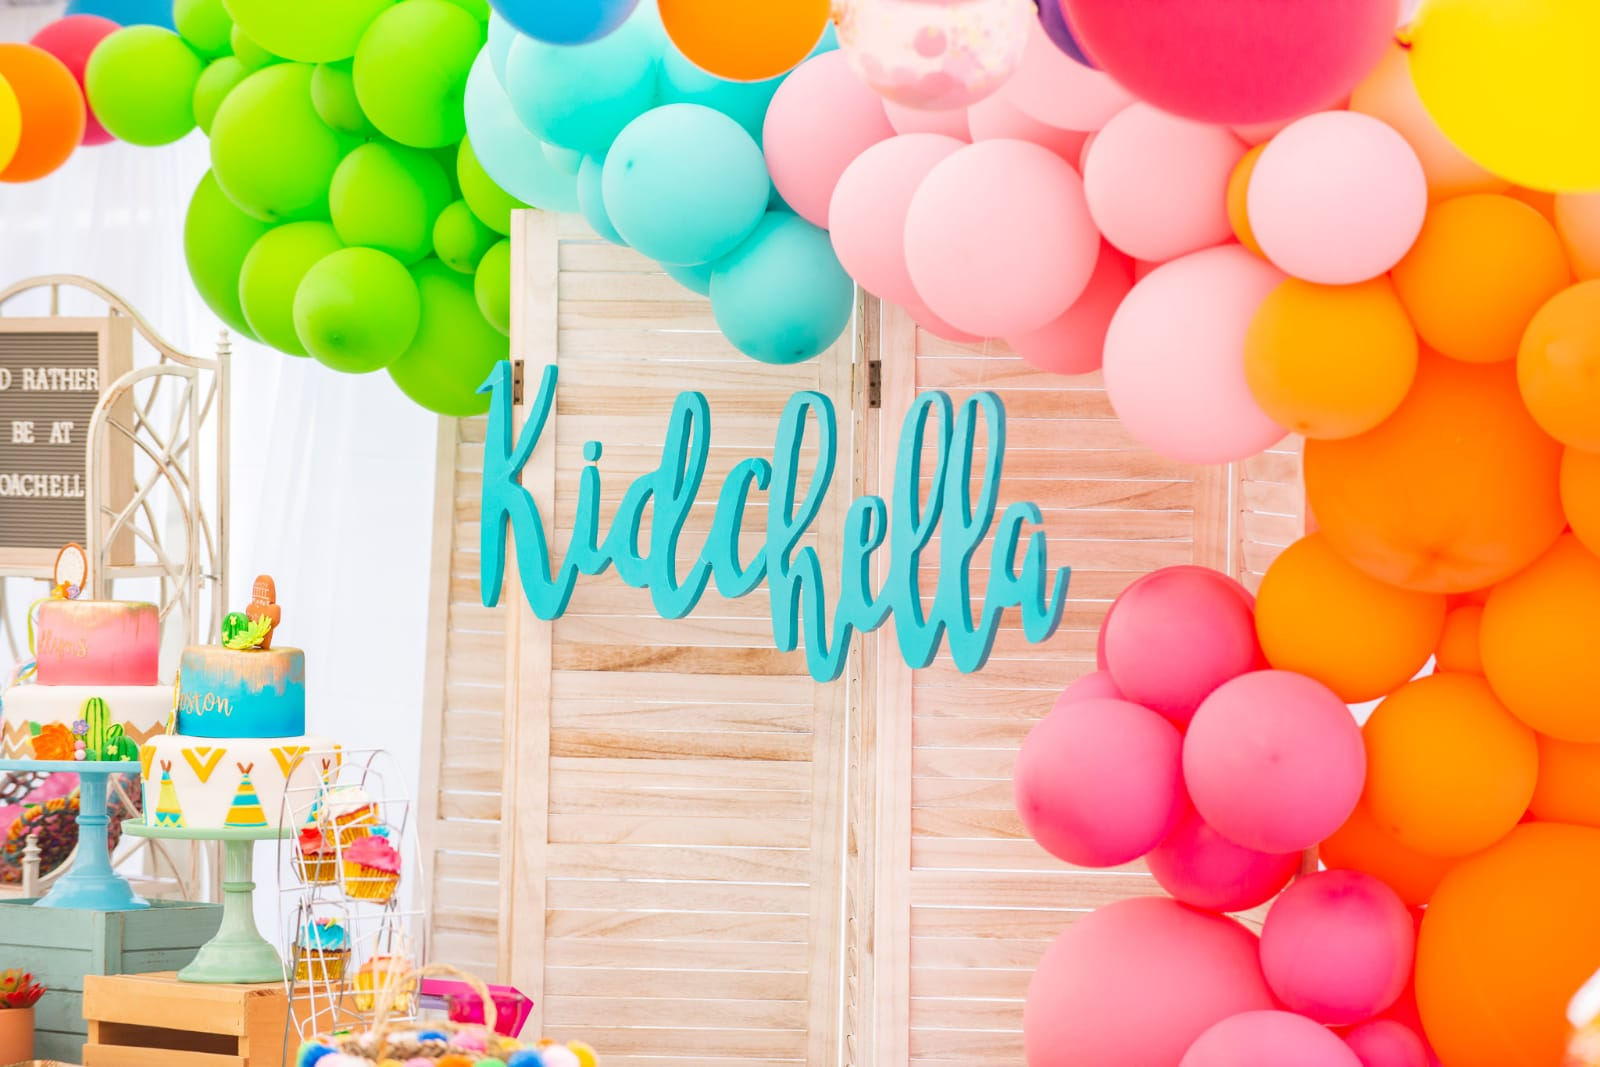 summer party theme ideas, The best summer party theme ideas